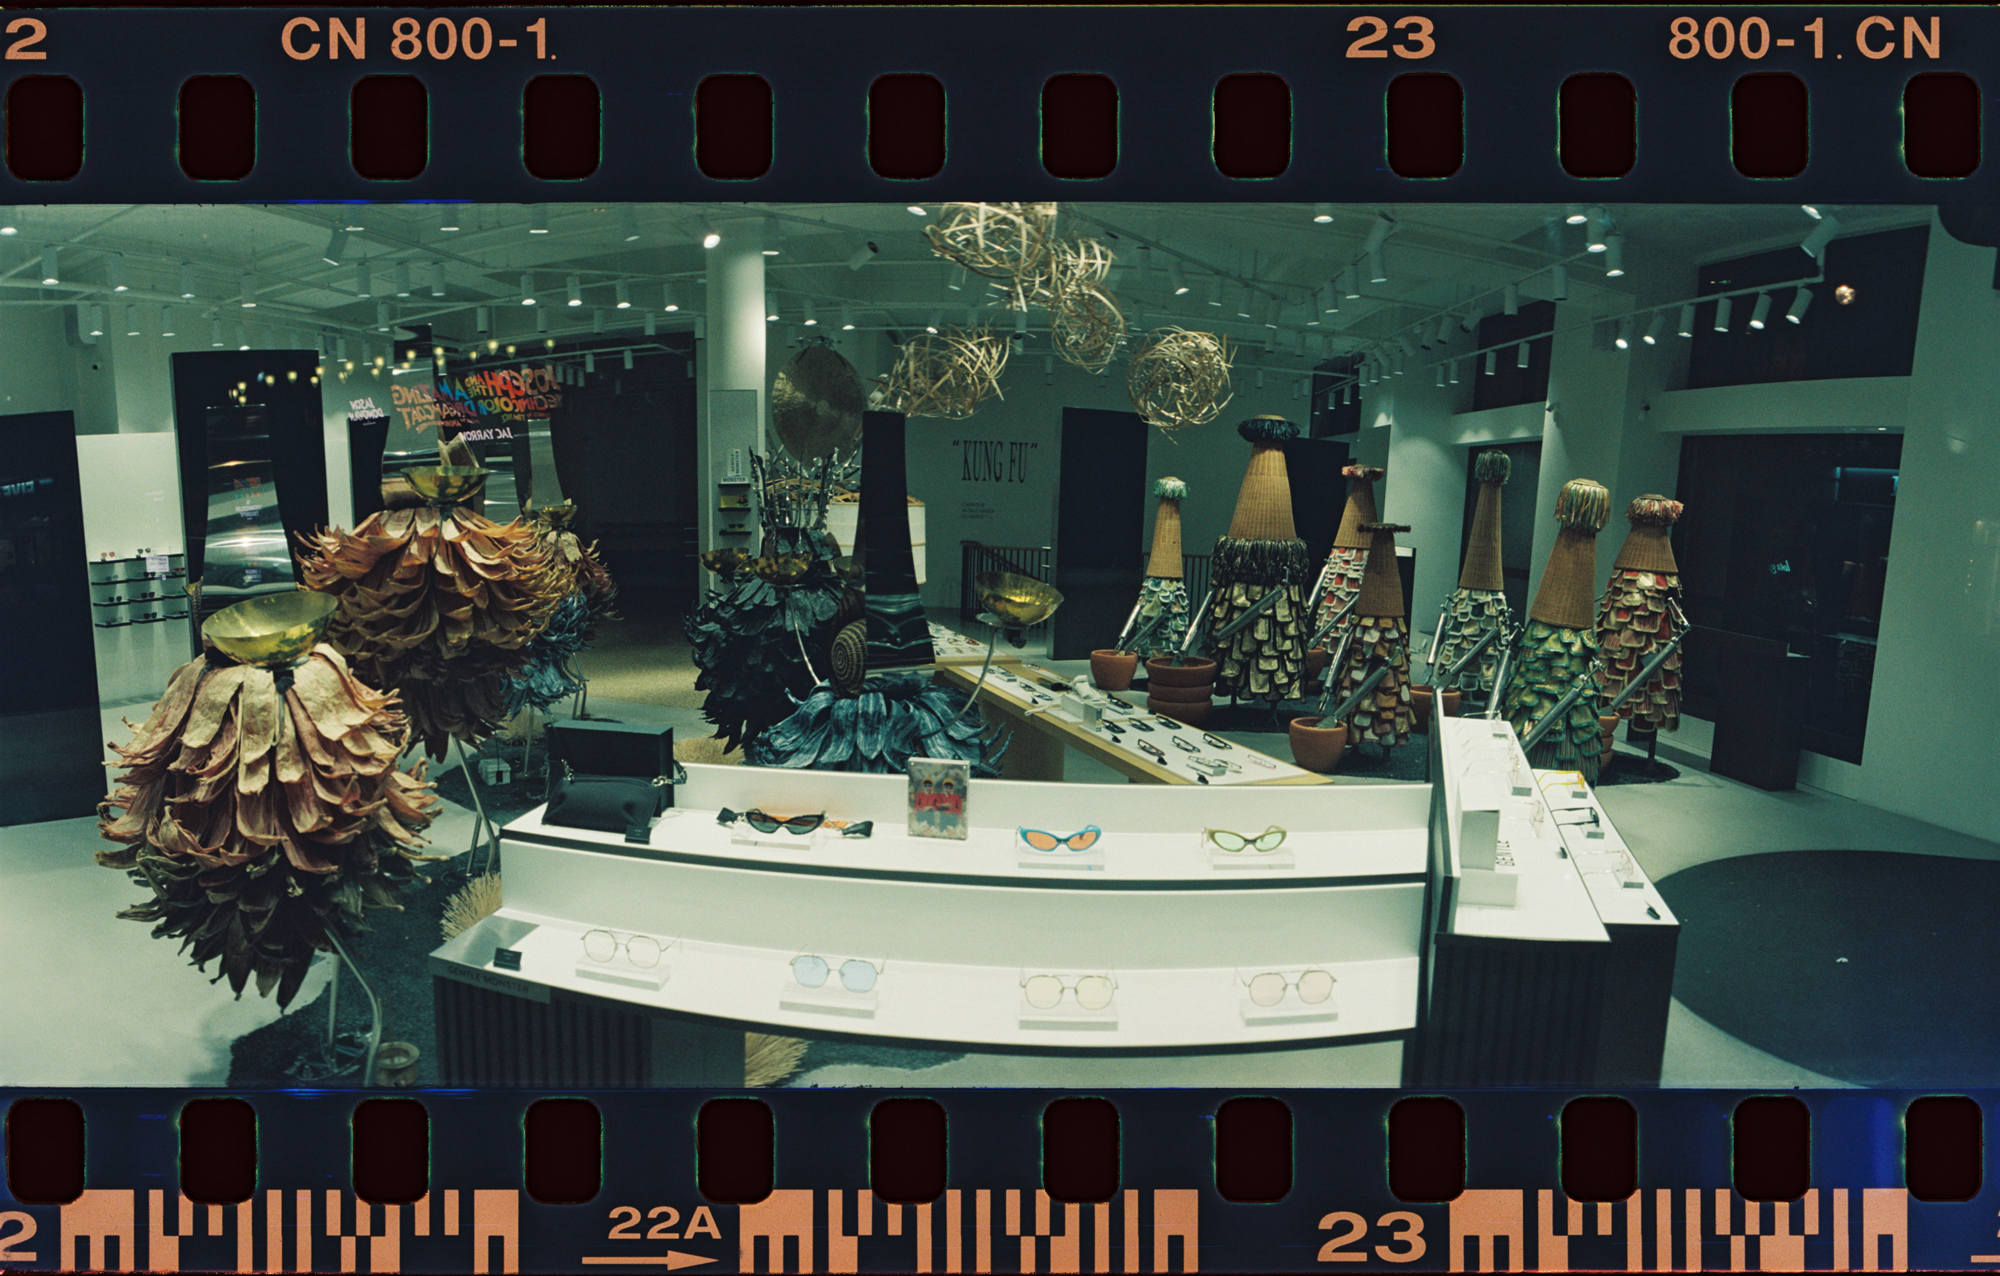 Another shot into a random store on the way through London.   Unusual display which came out ok in the shot.